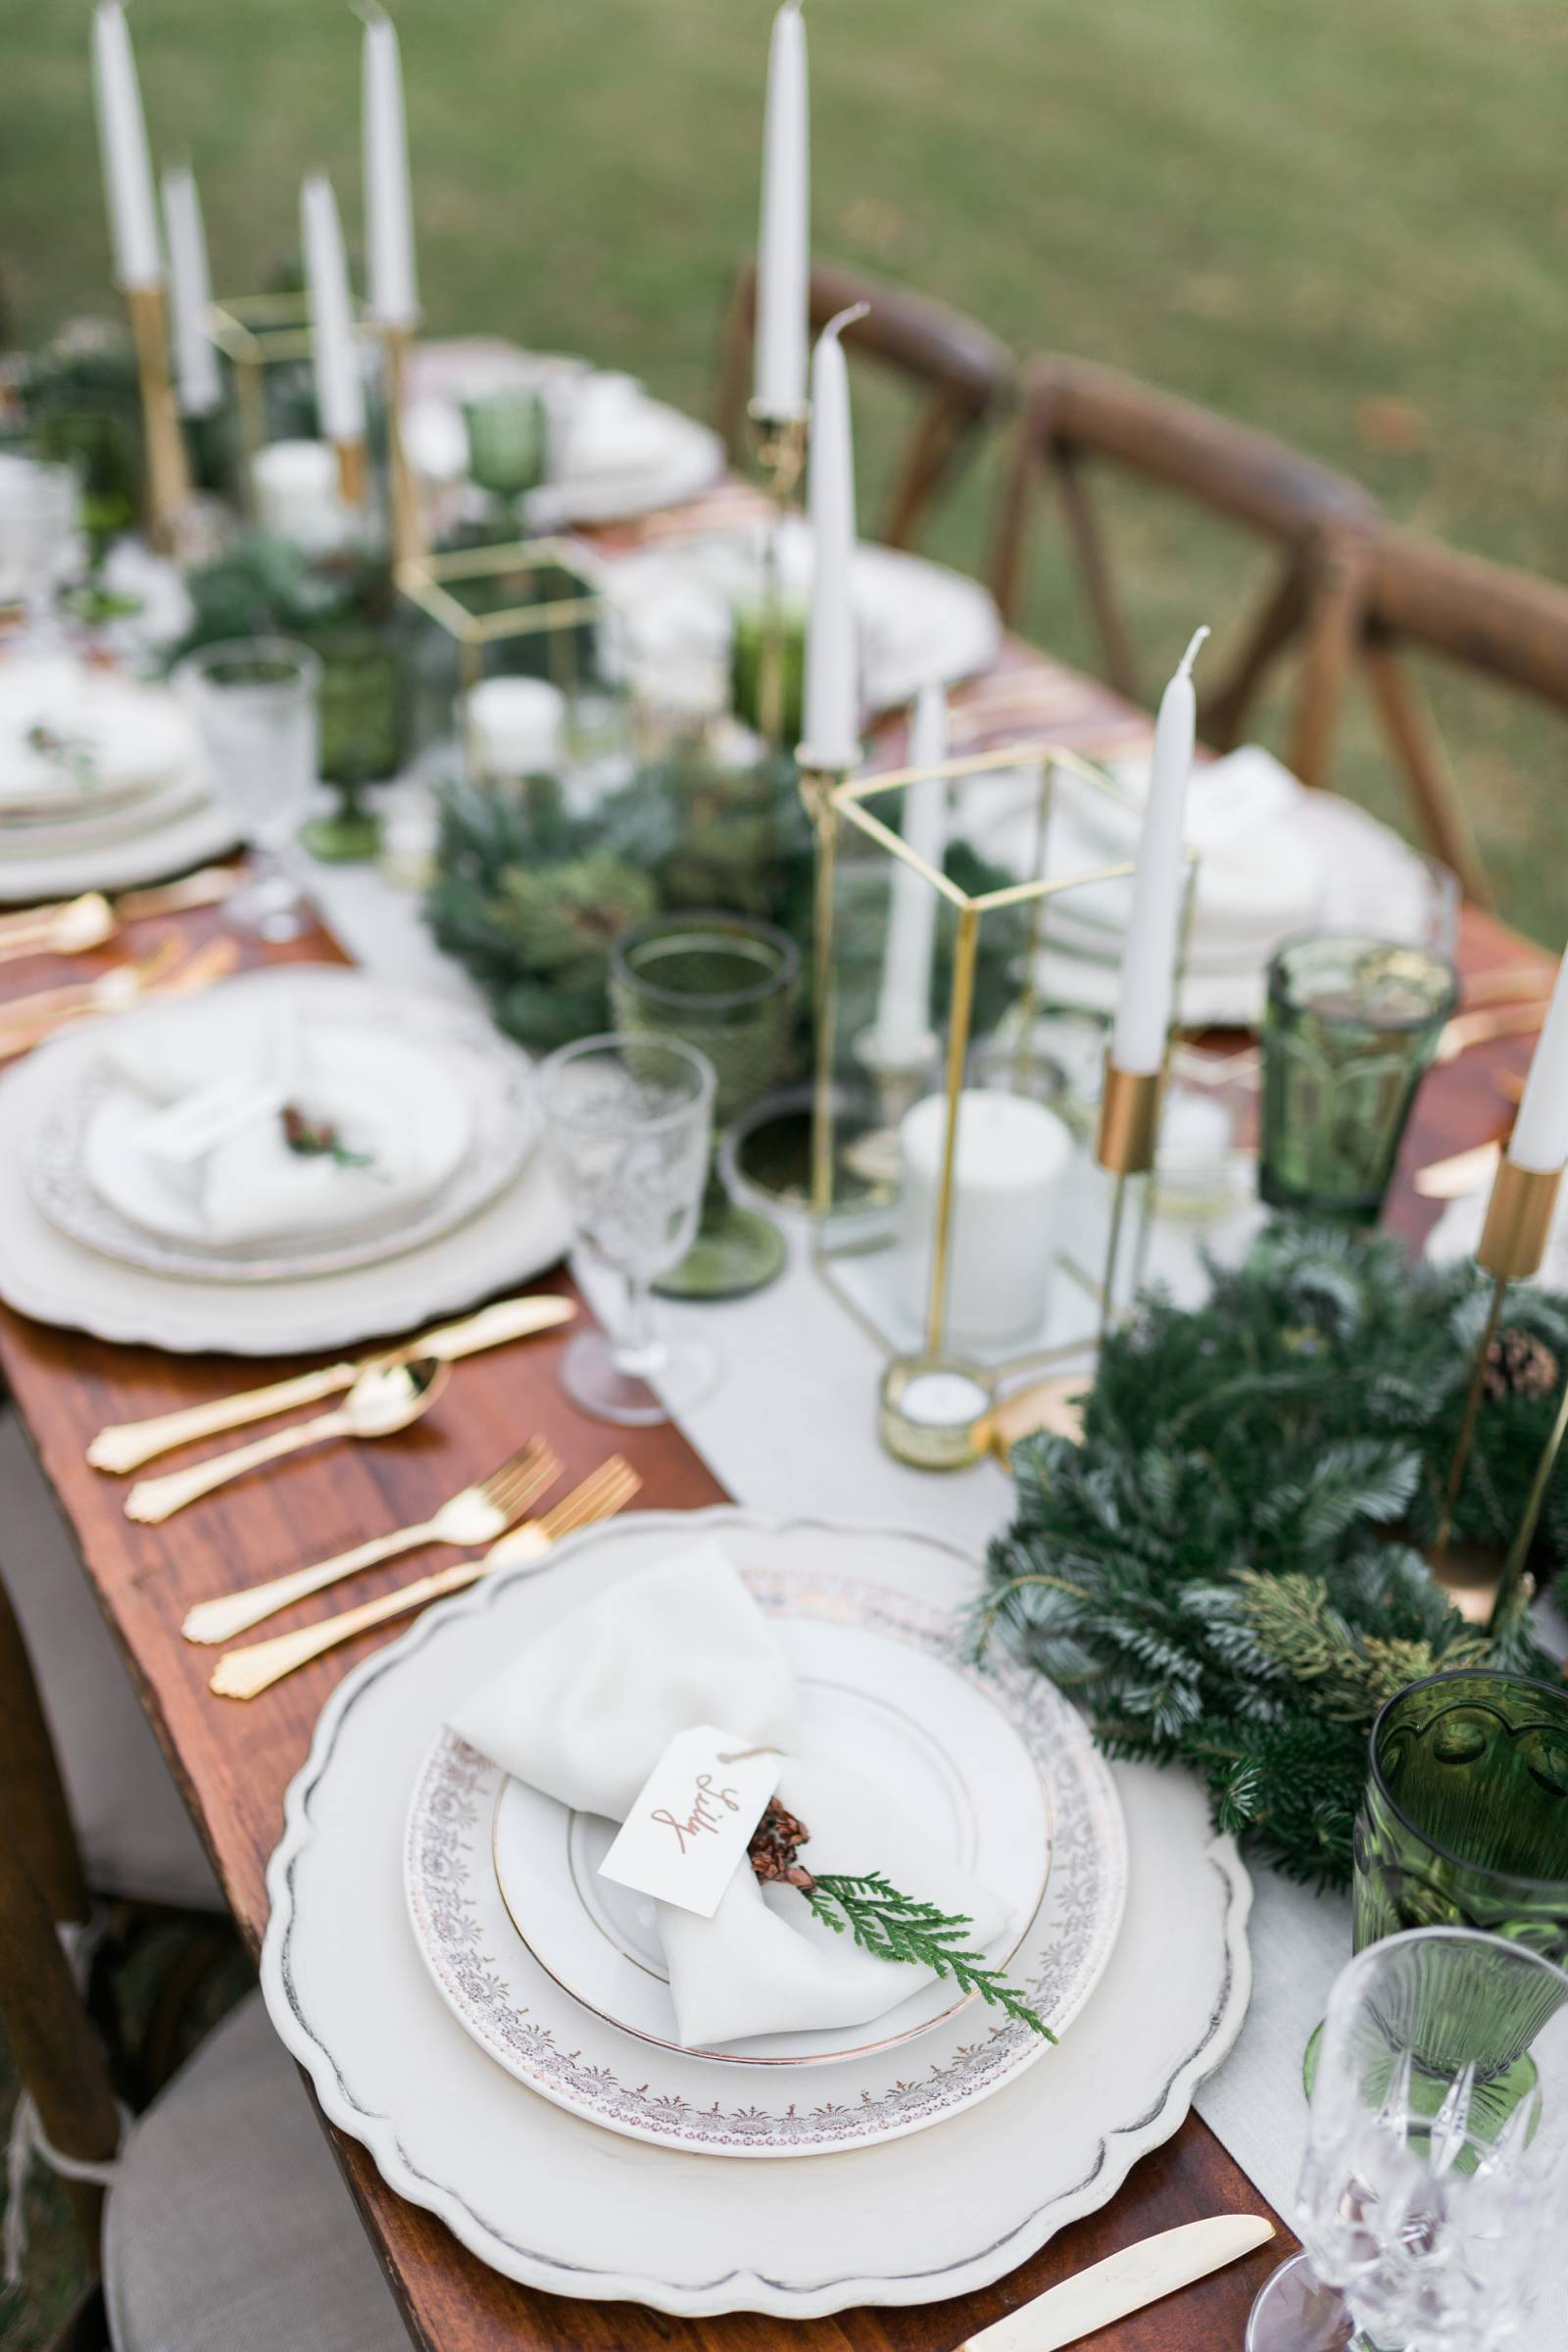 Cedarmont Farm is the Perfect Baby Shower and Kids Birthday